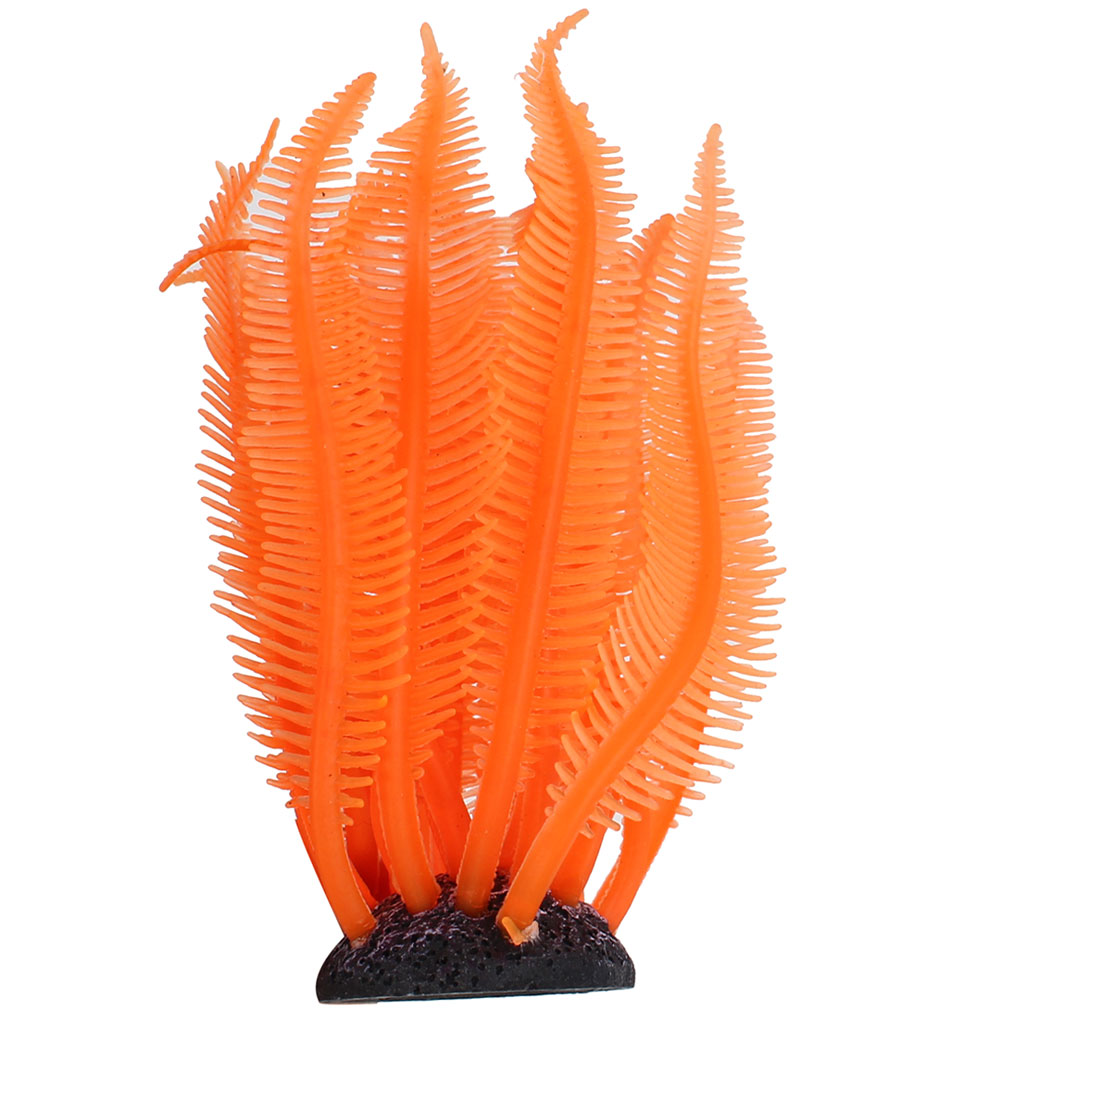 "Orange Silicone Underwater Grass Plant Fish Tank Aquarium Ornament 3.5"" High"